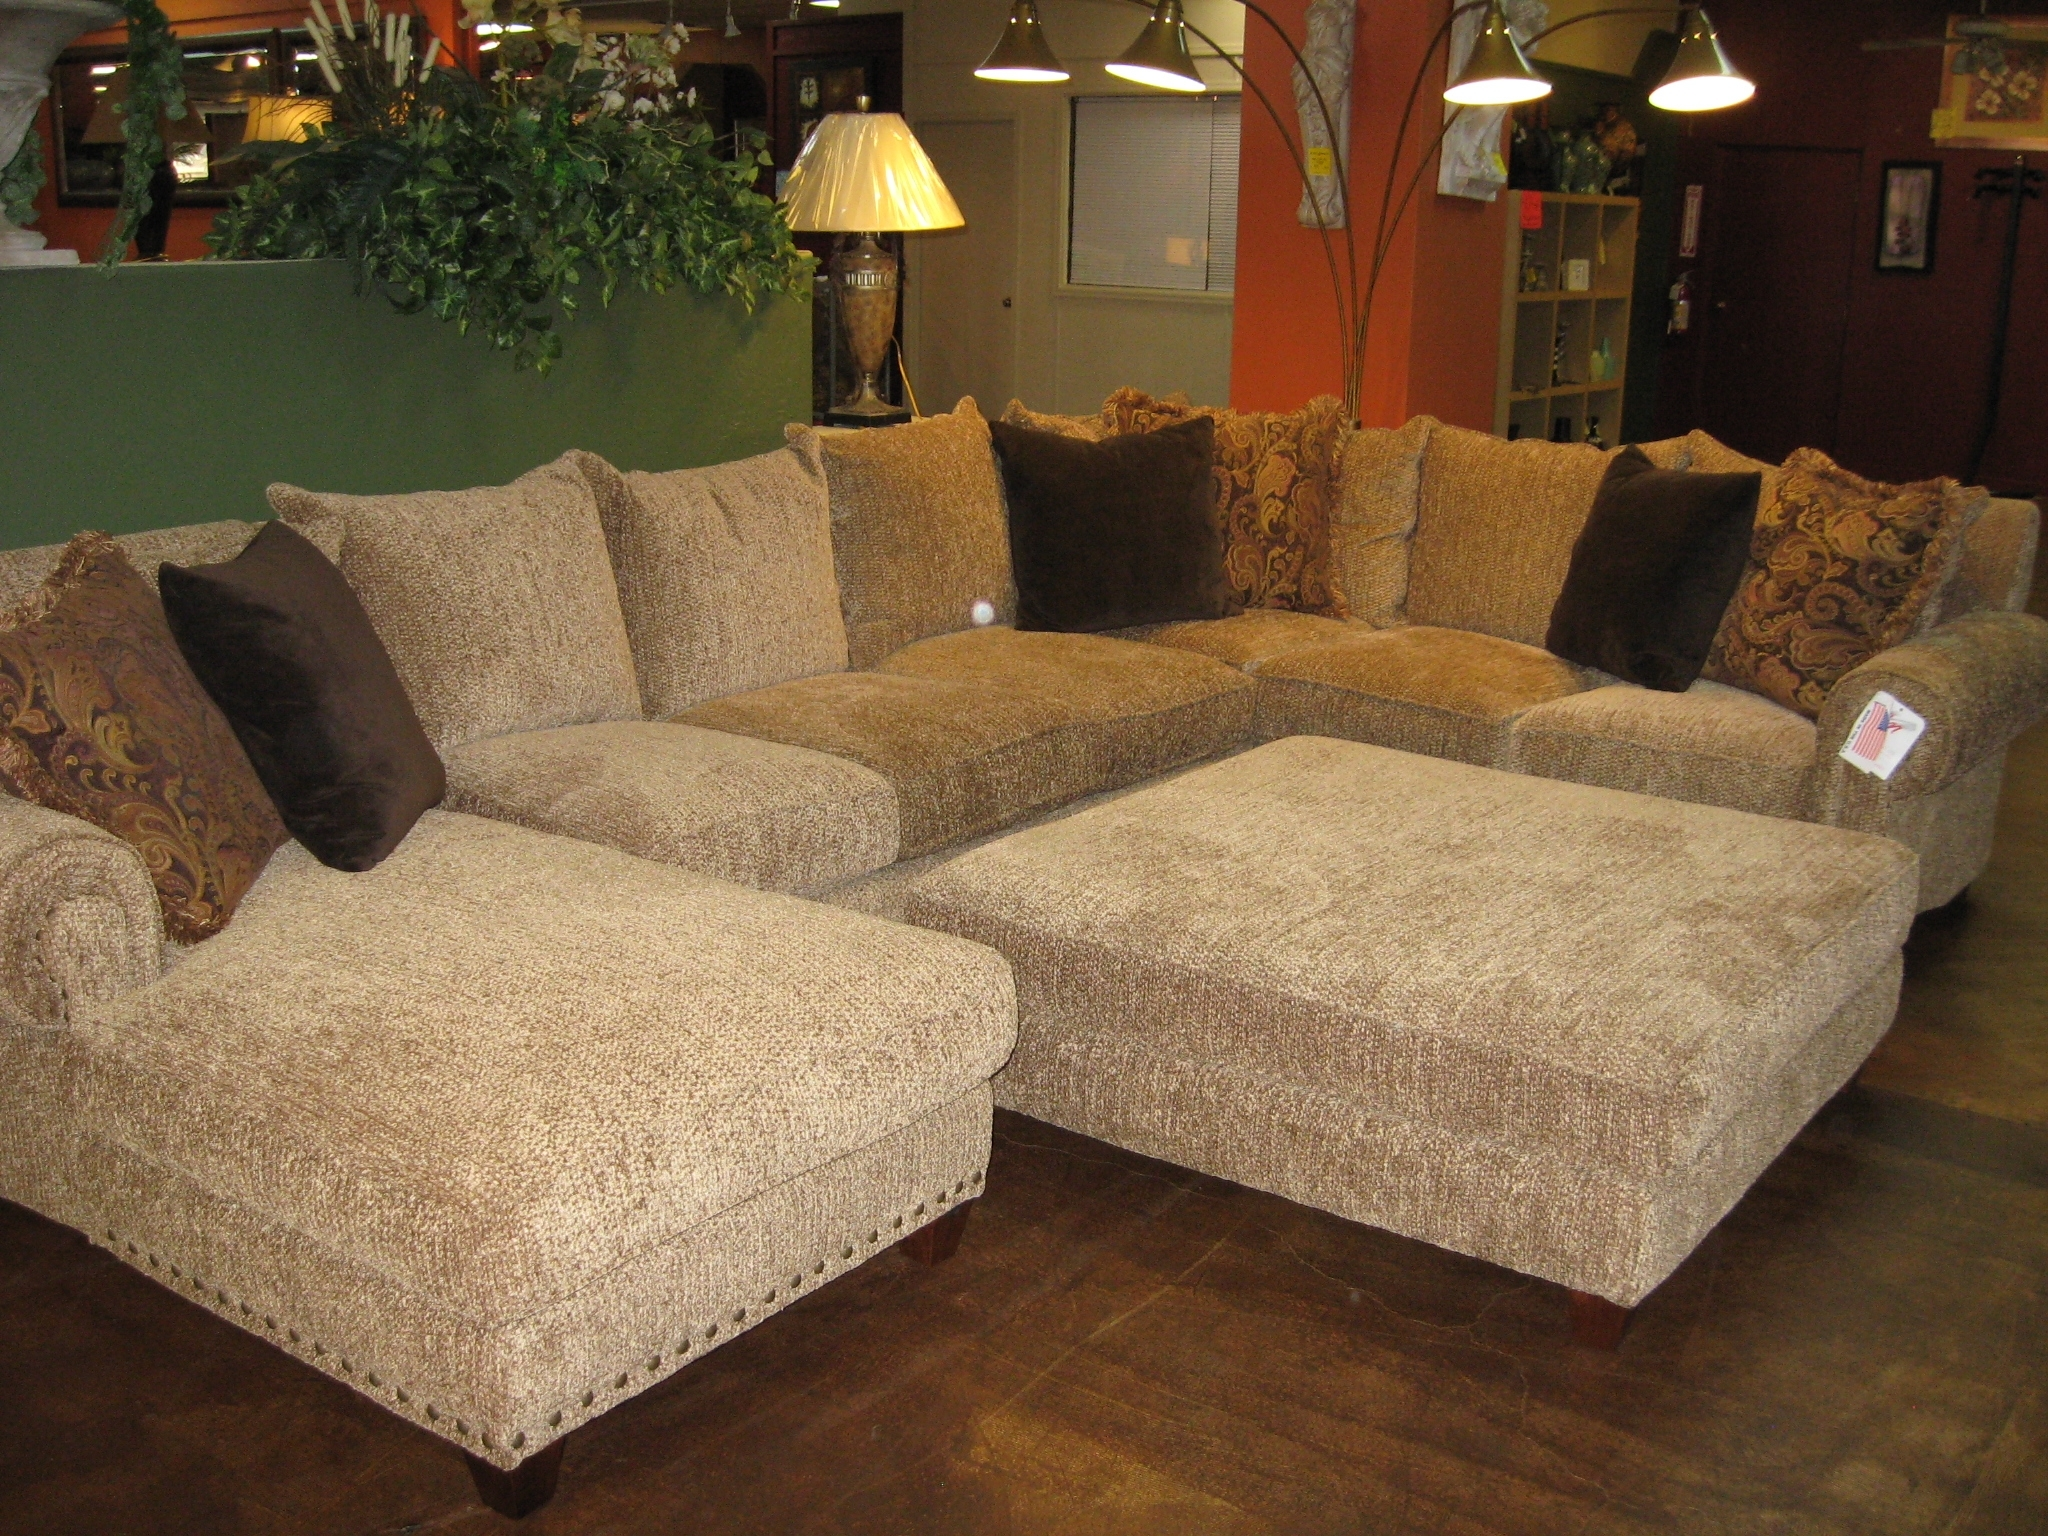 Epic Large Sectional Sofa With Ottoman About Elegant Large Sectional intended for Sectional Couches With Large Ottoman (Image 8 of 15)